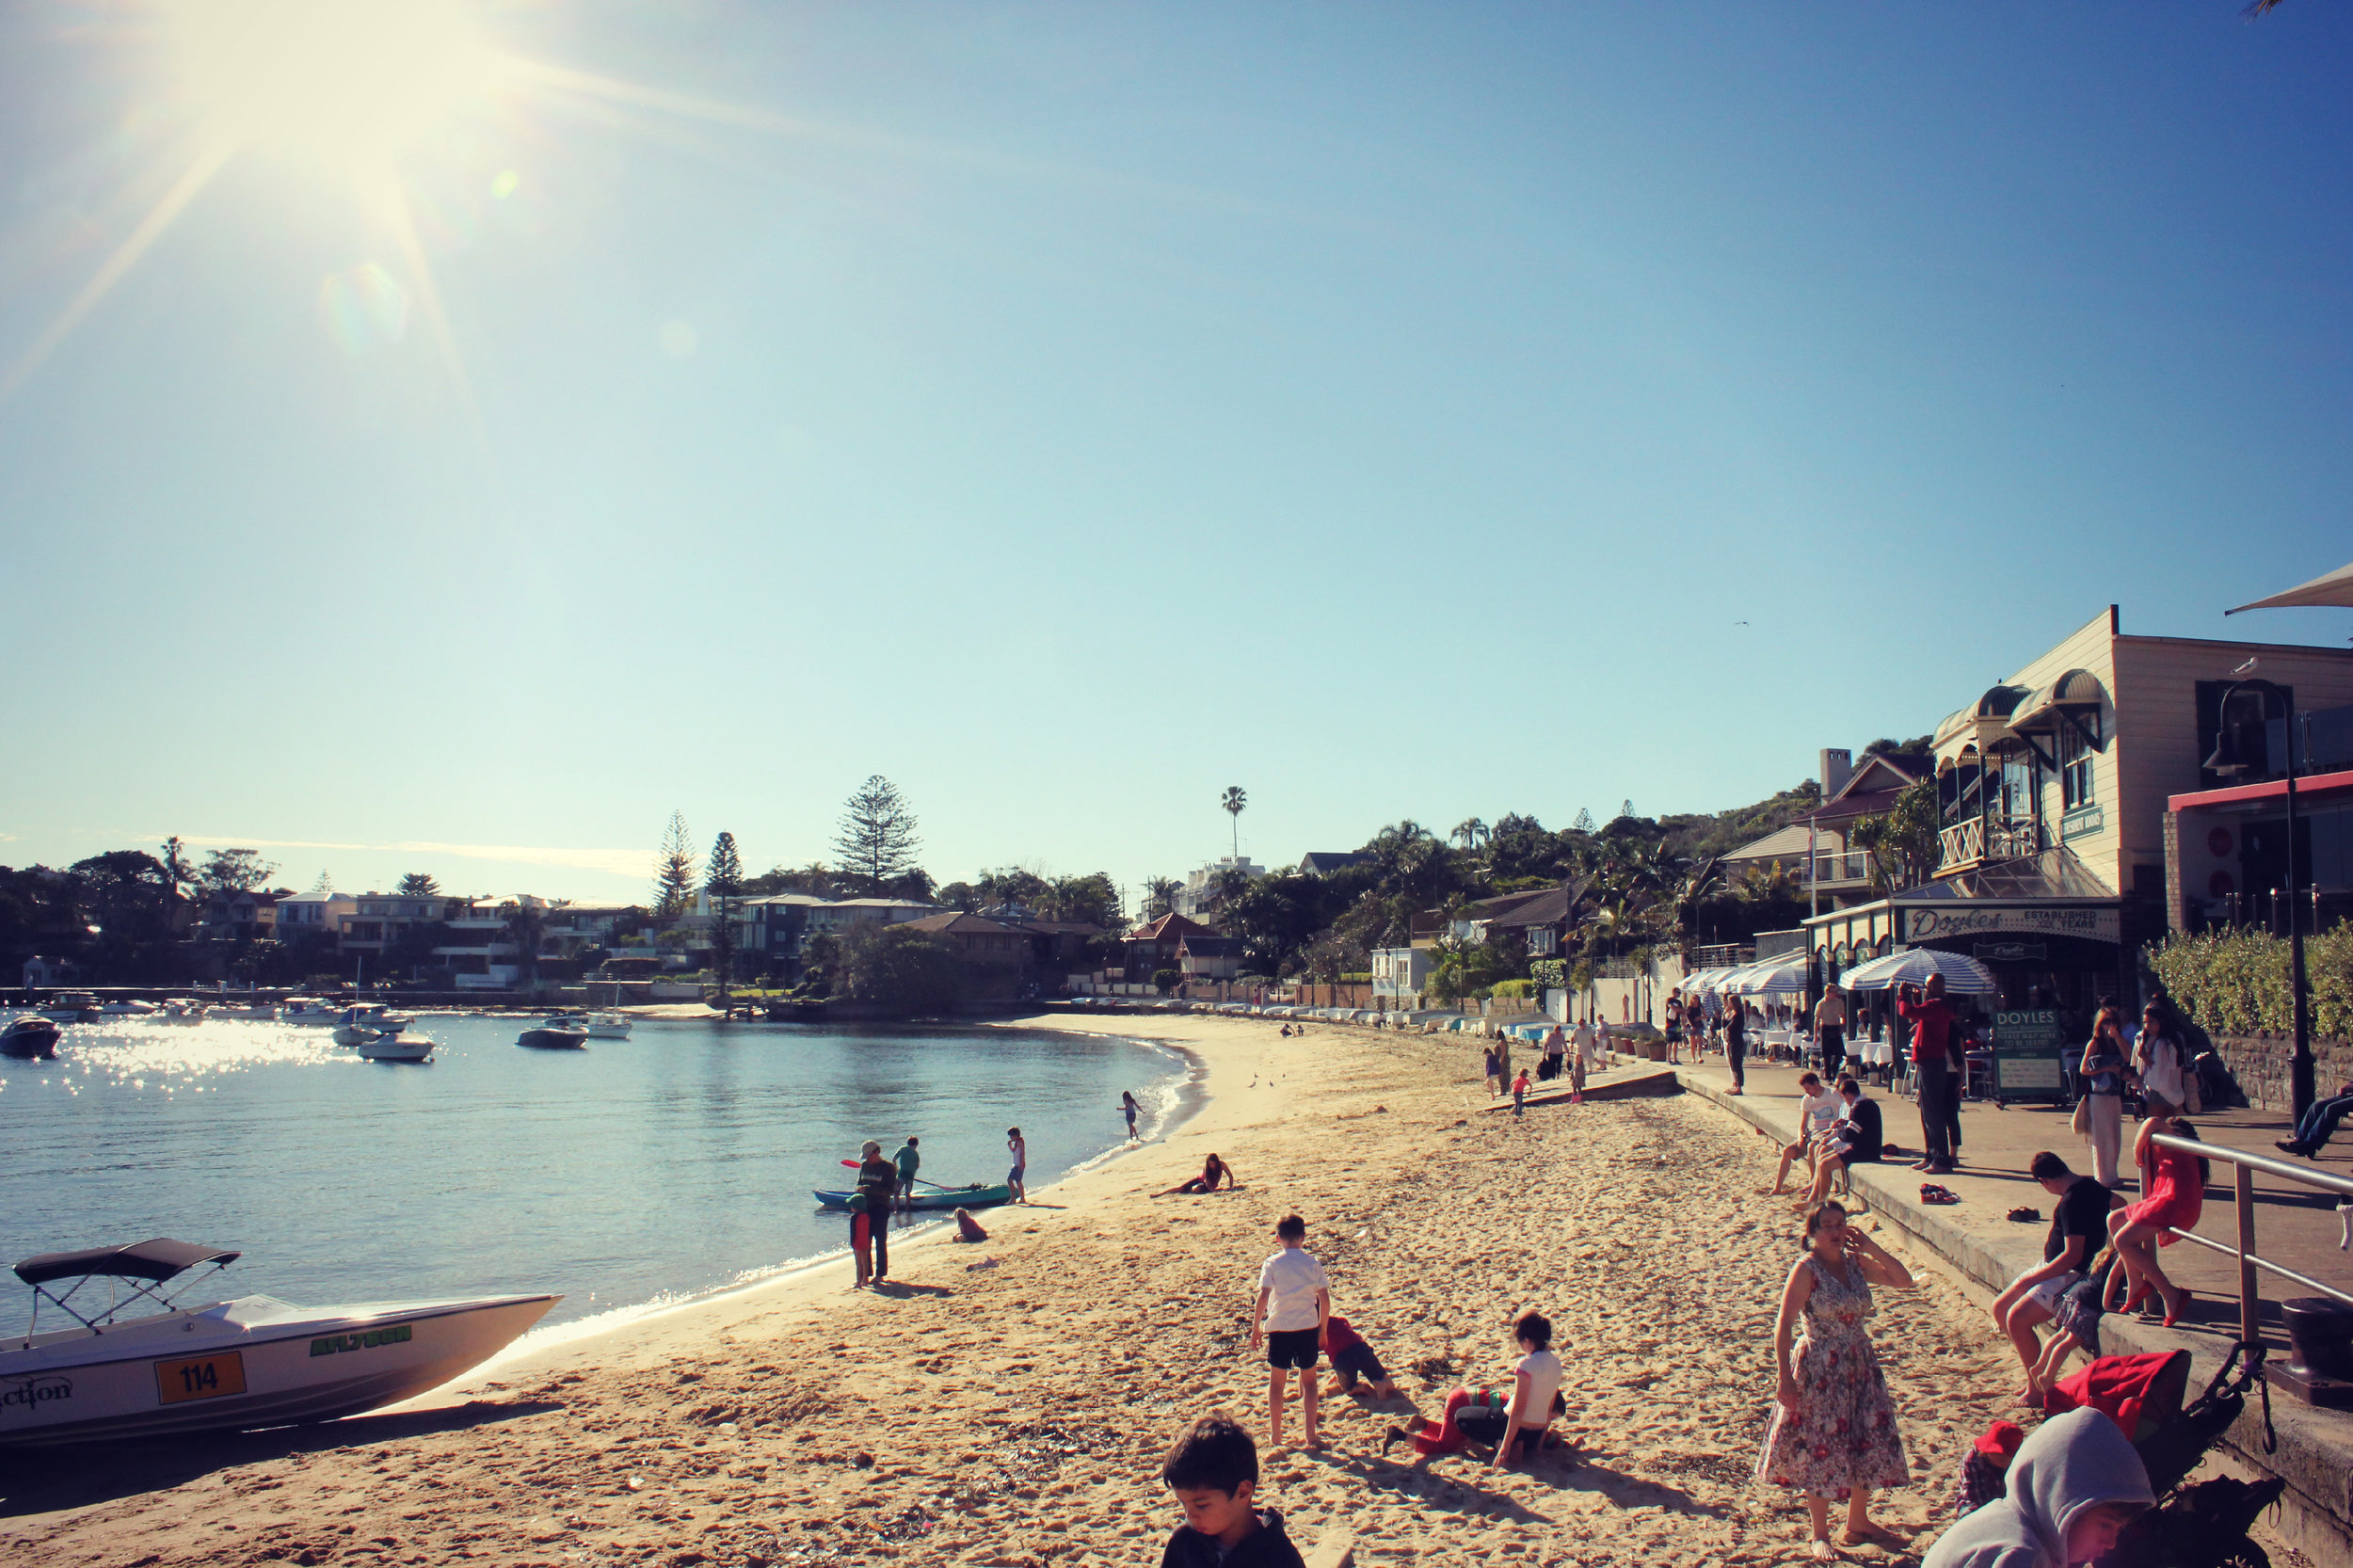 A winter day in Watson's Bay - photo: Marine Raynard